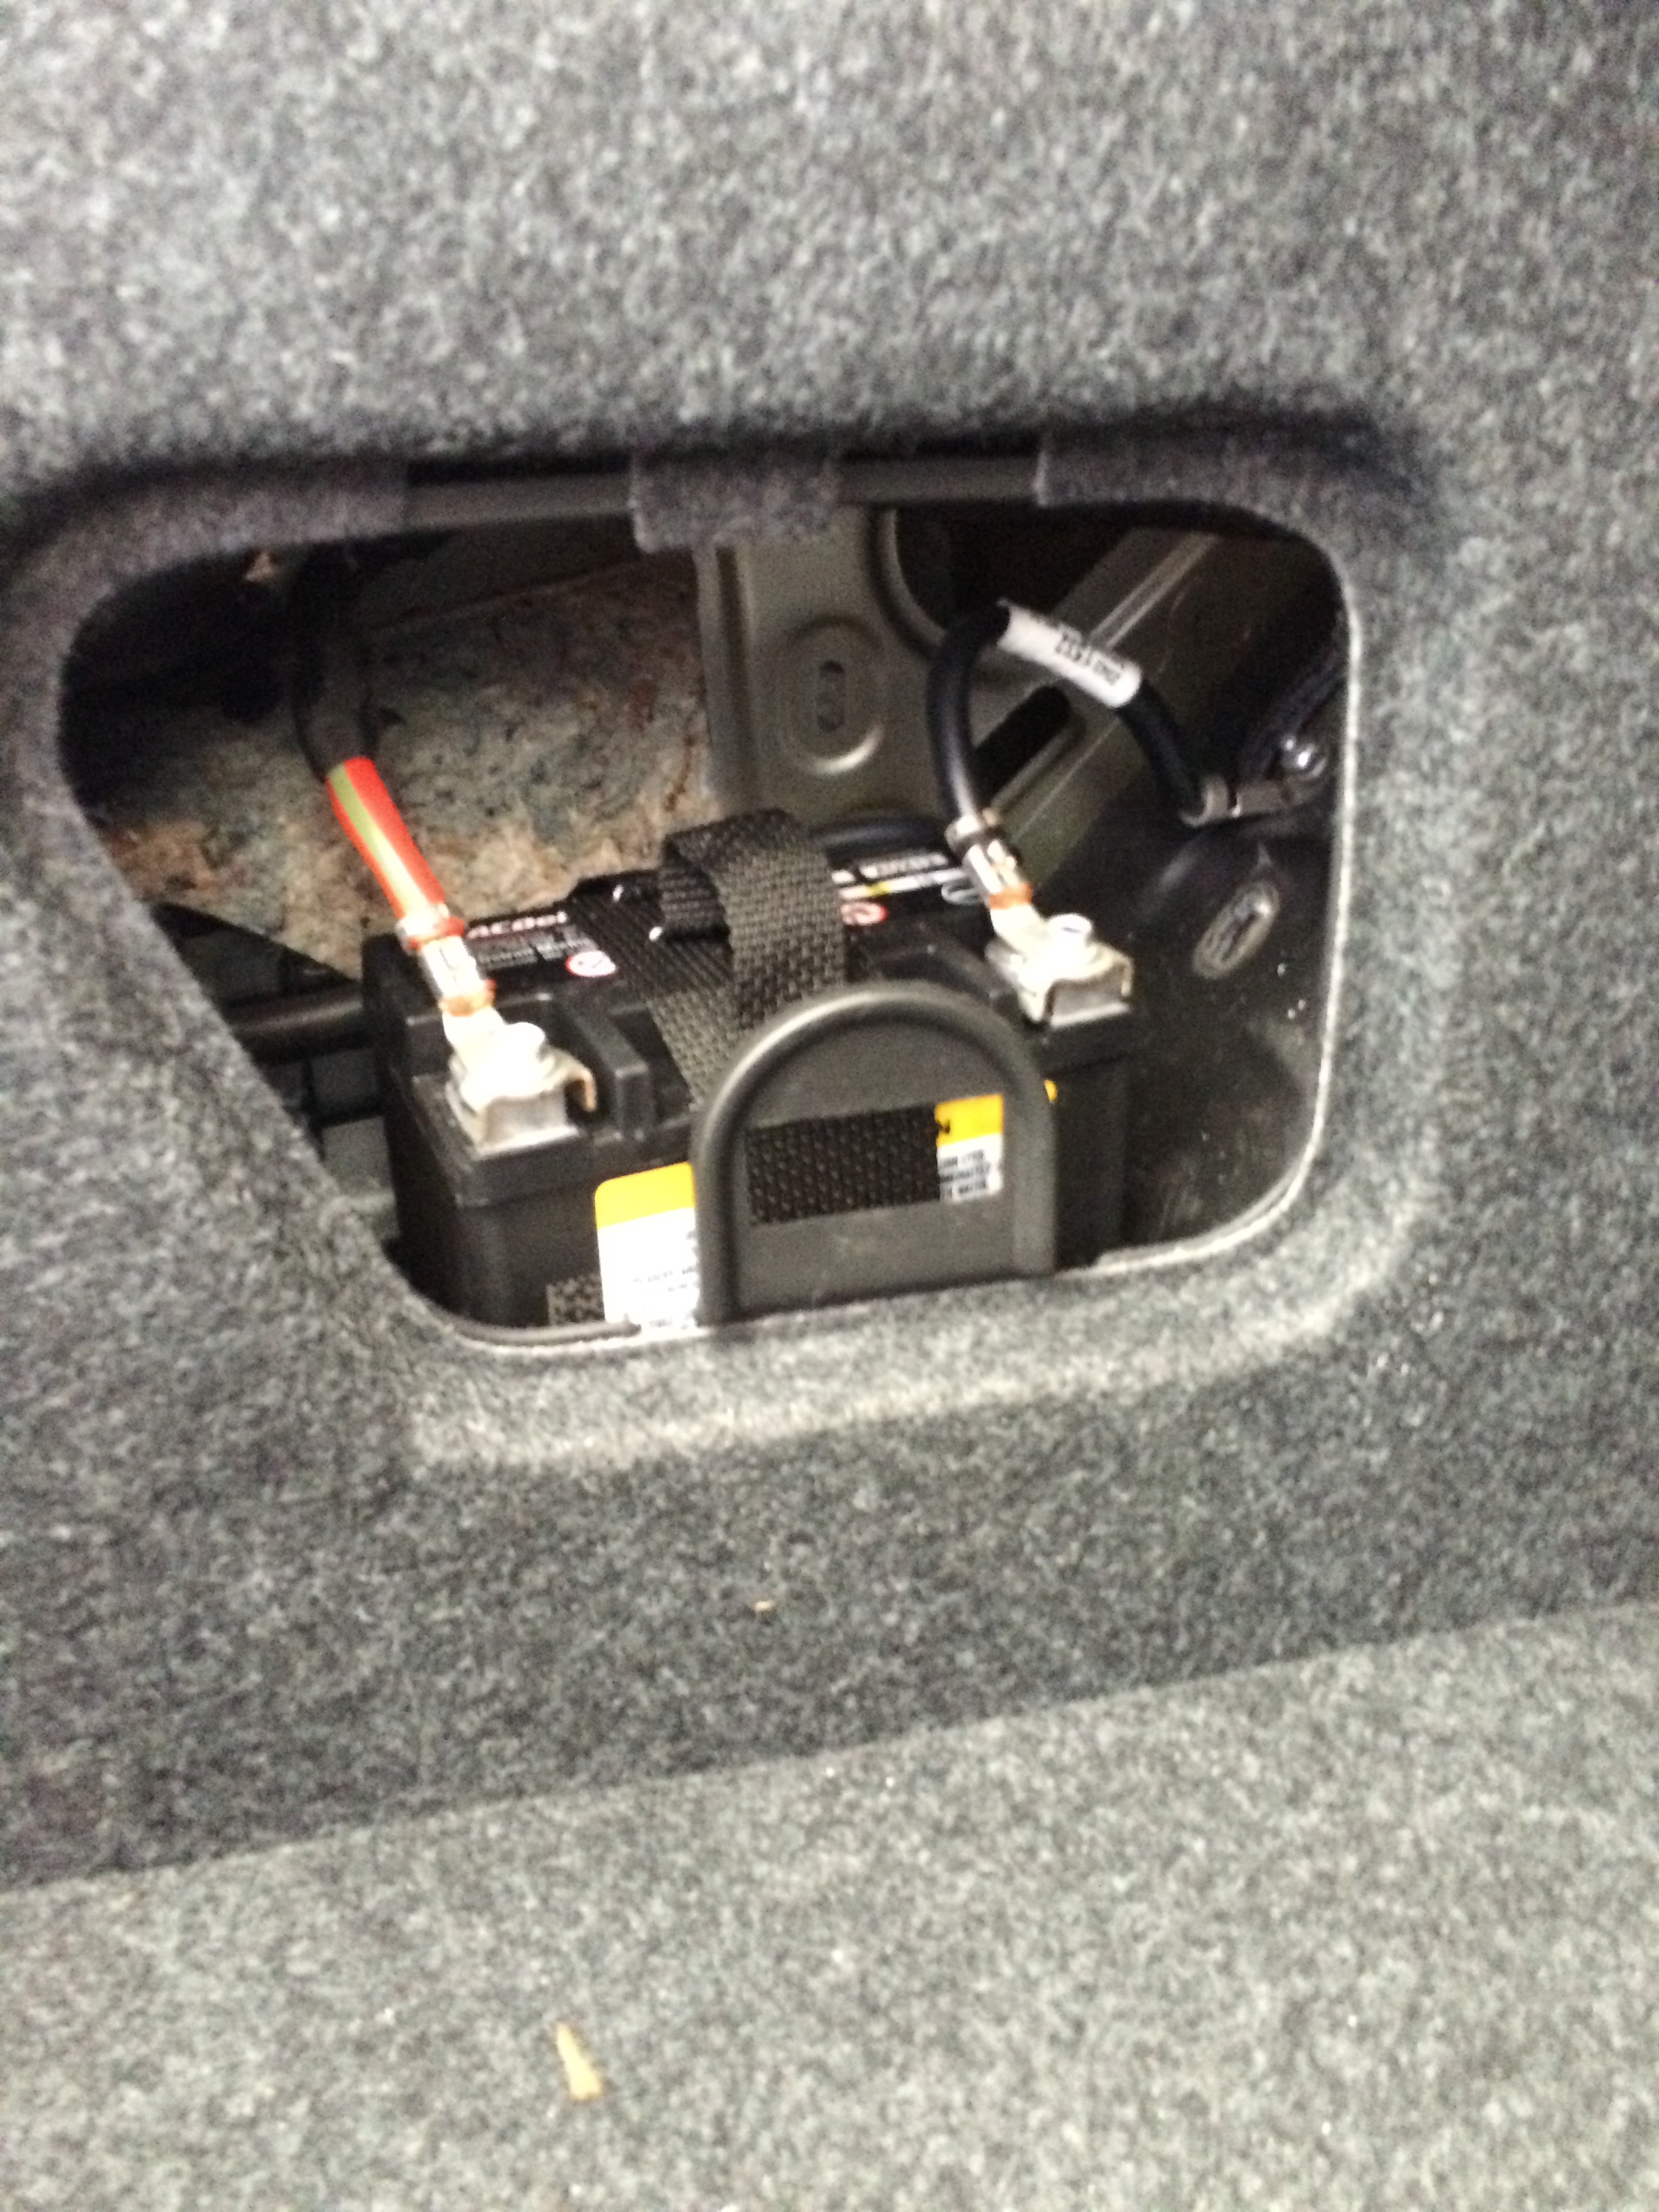 2015 chevy malibu aux battery truck safety extrication 2015 chevrolet malibu auxiliary power supply boron extrication 2013 Chevrolet Malibu Fuse Box at arjmand.co